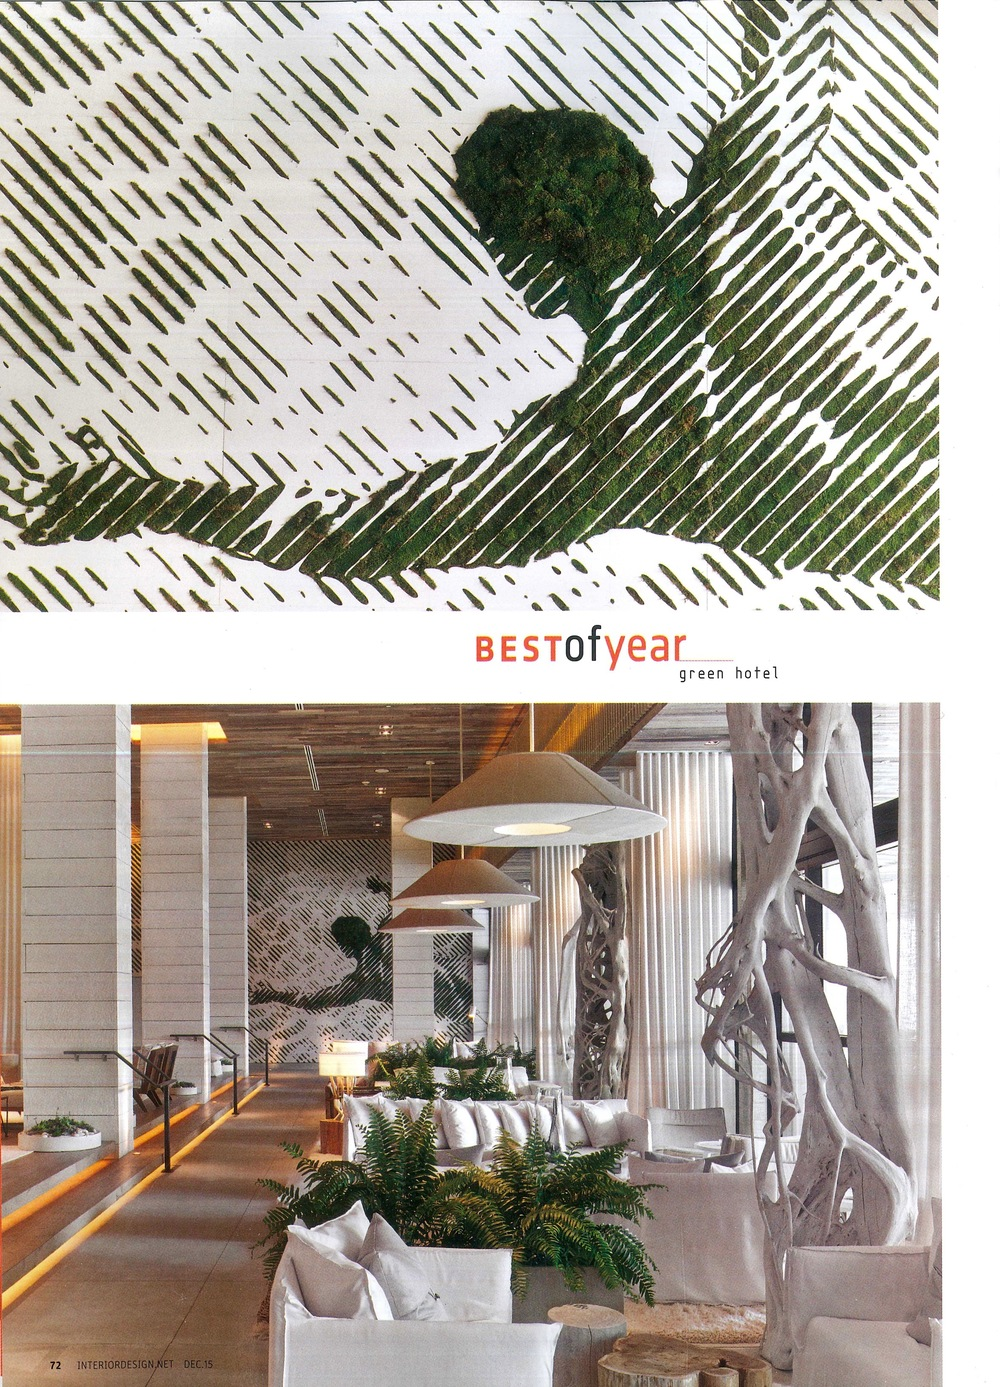 Interior Design_BoY Awards 2015_Meyer Davis_1 Hotel South Beach_3.jpg